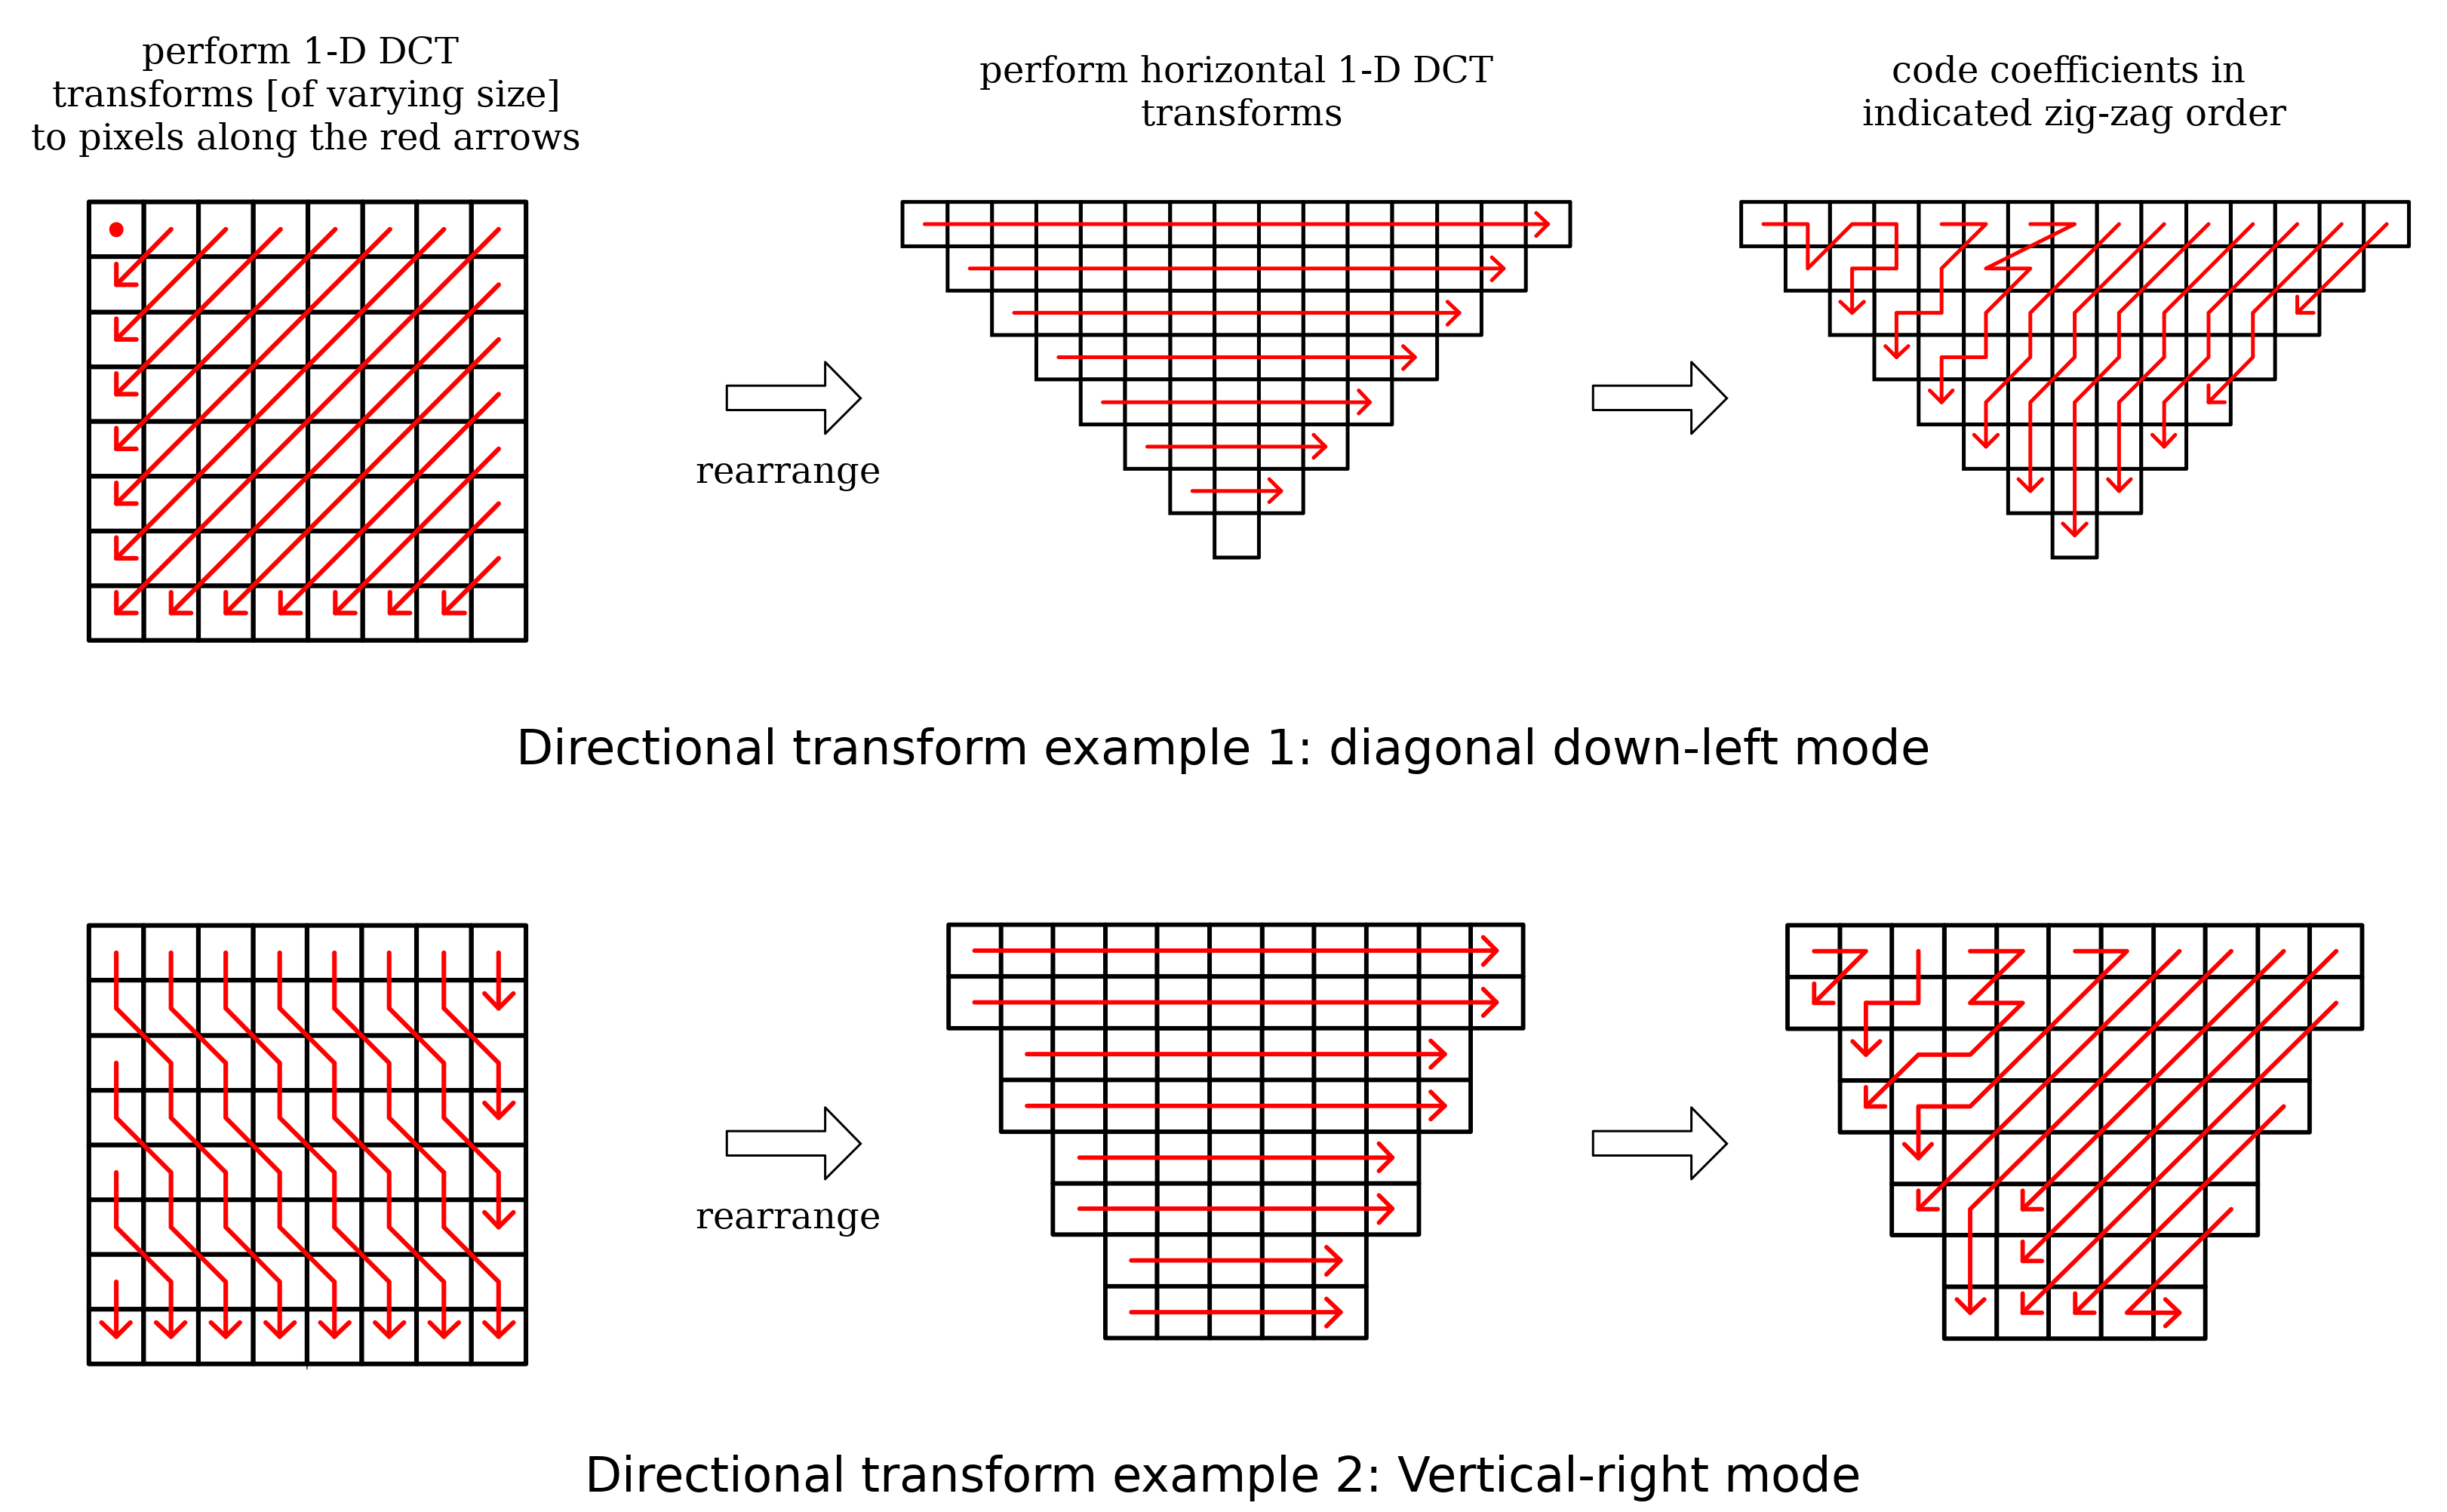 Directional transform example 1: diagonal down-left mode and Directional transform example 2: vertical right mode